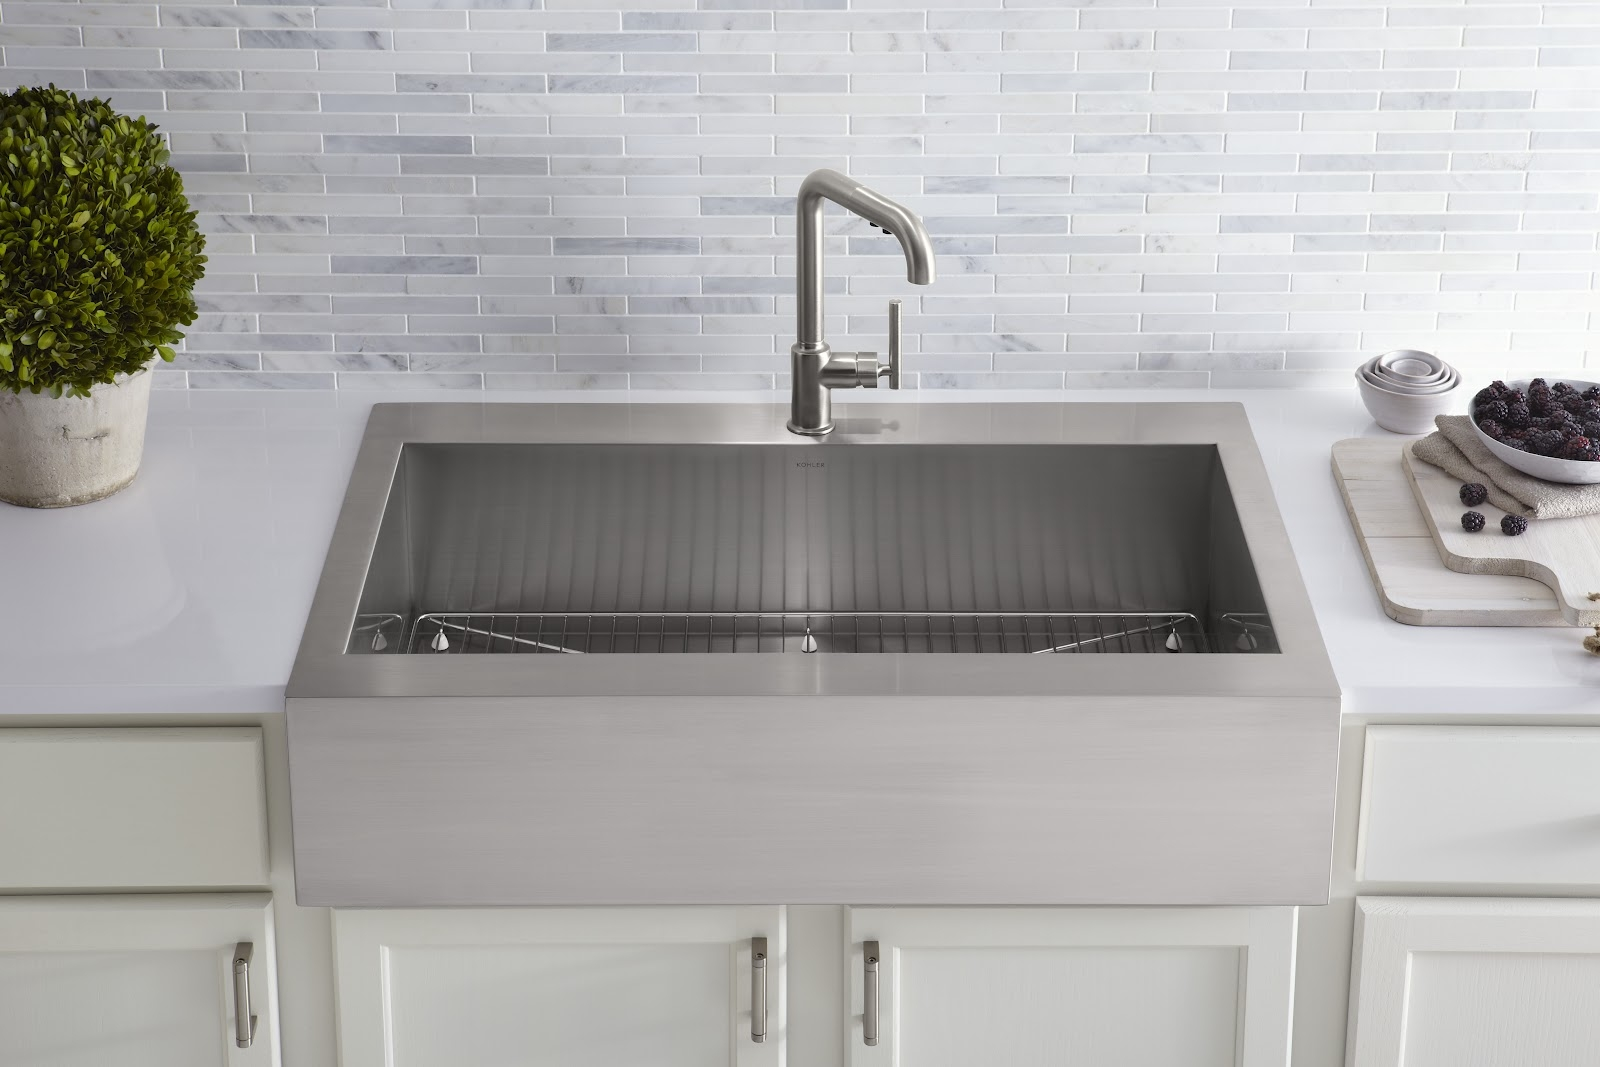 Ideas, kitchen convenient cleaning with stainless steel farm sink pertaining to sizing 1600 x 1067  .